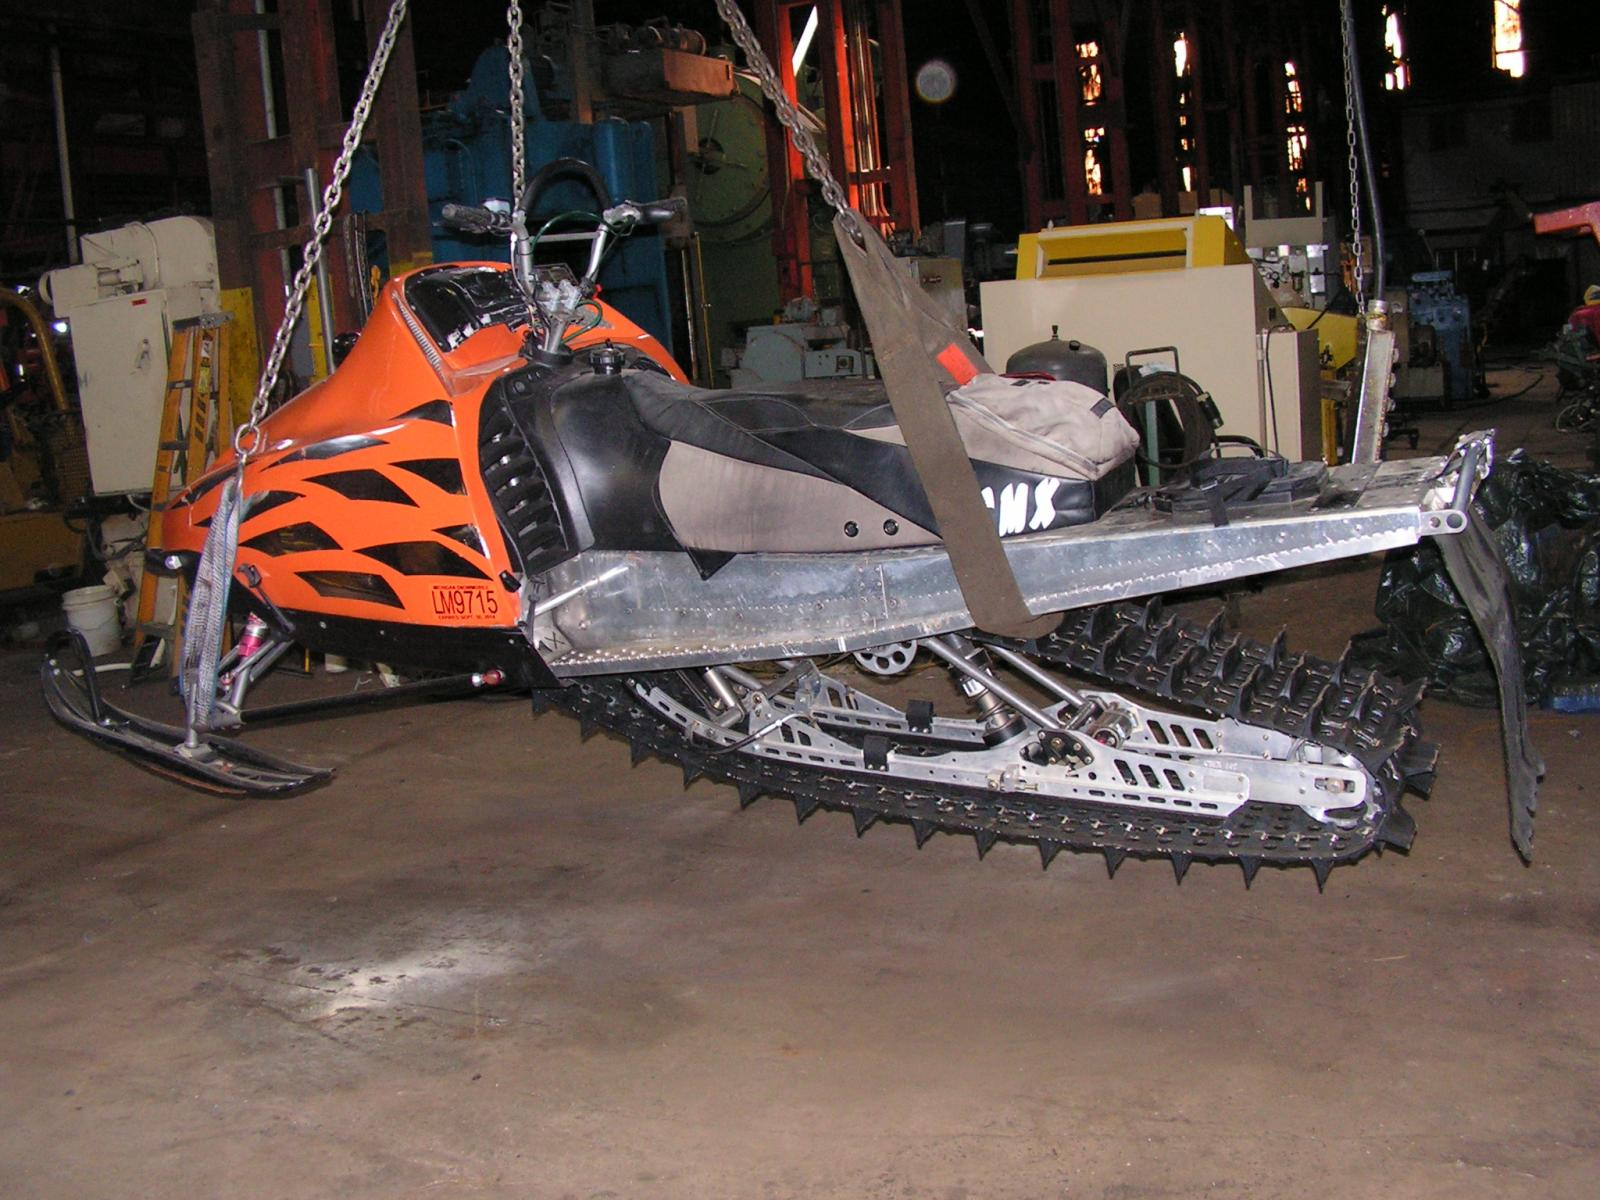 2005 Crazy Mountain Extreme For Sale $7300 - HCS Snowmobile Forums